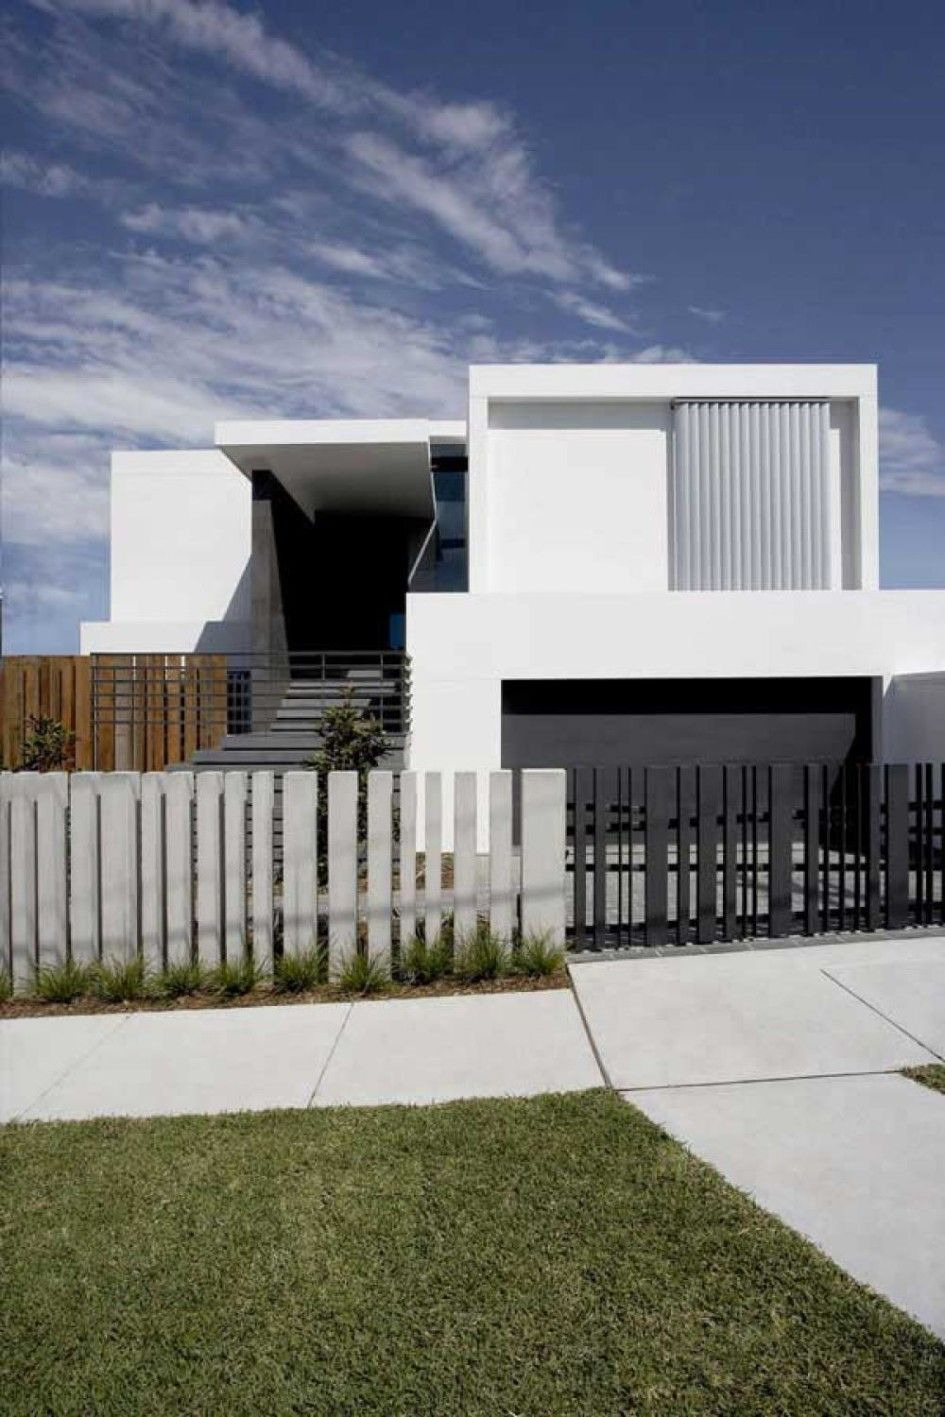 Residential Gate Designs Modern New Fence Gate Design Images for Minimalist House Modern House